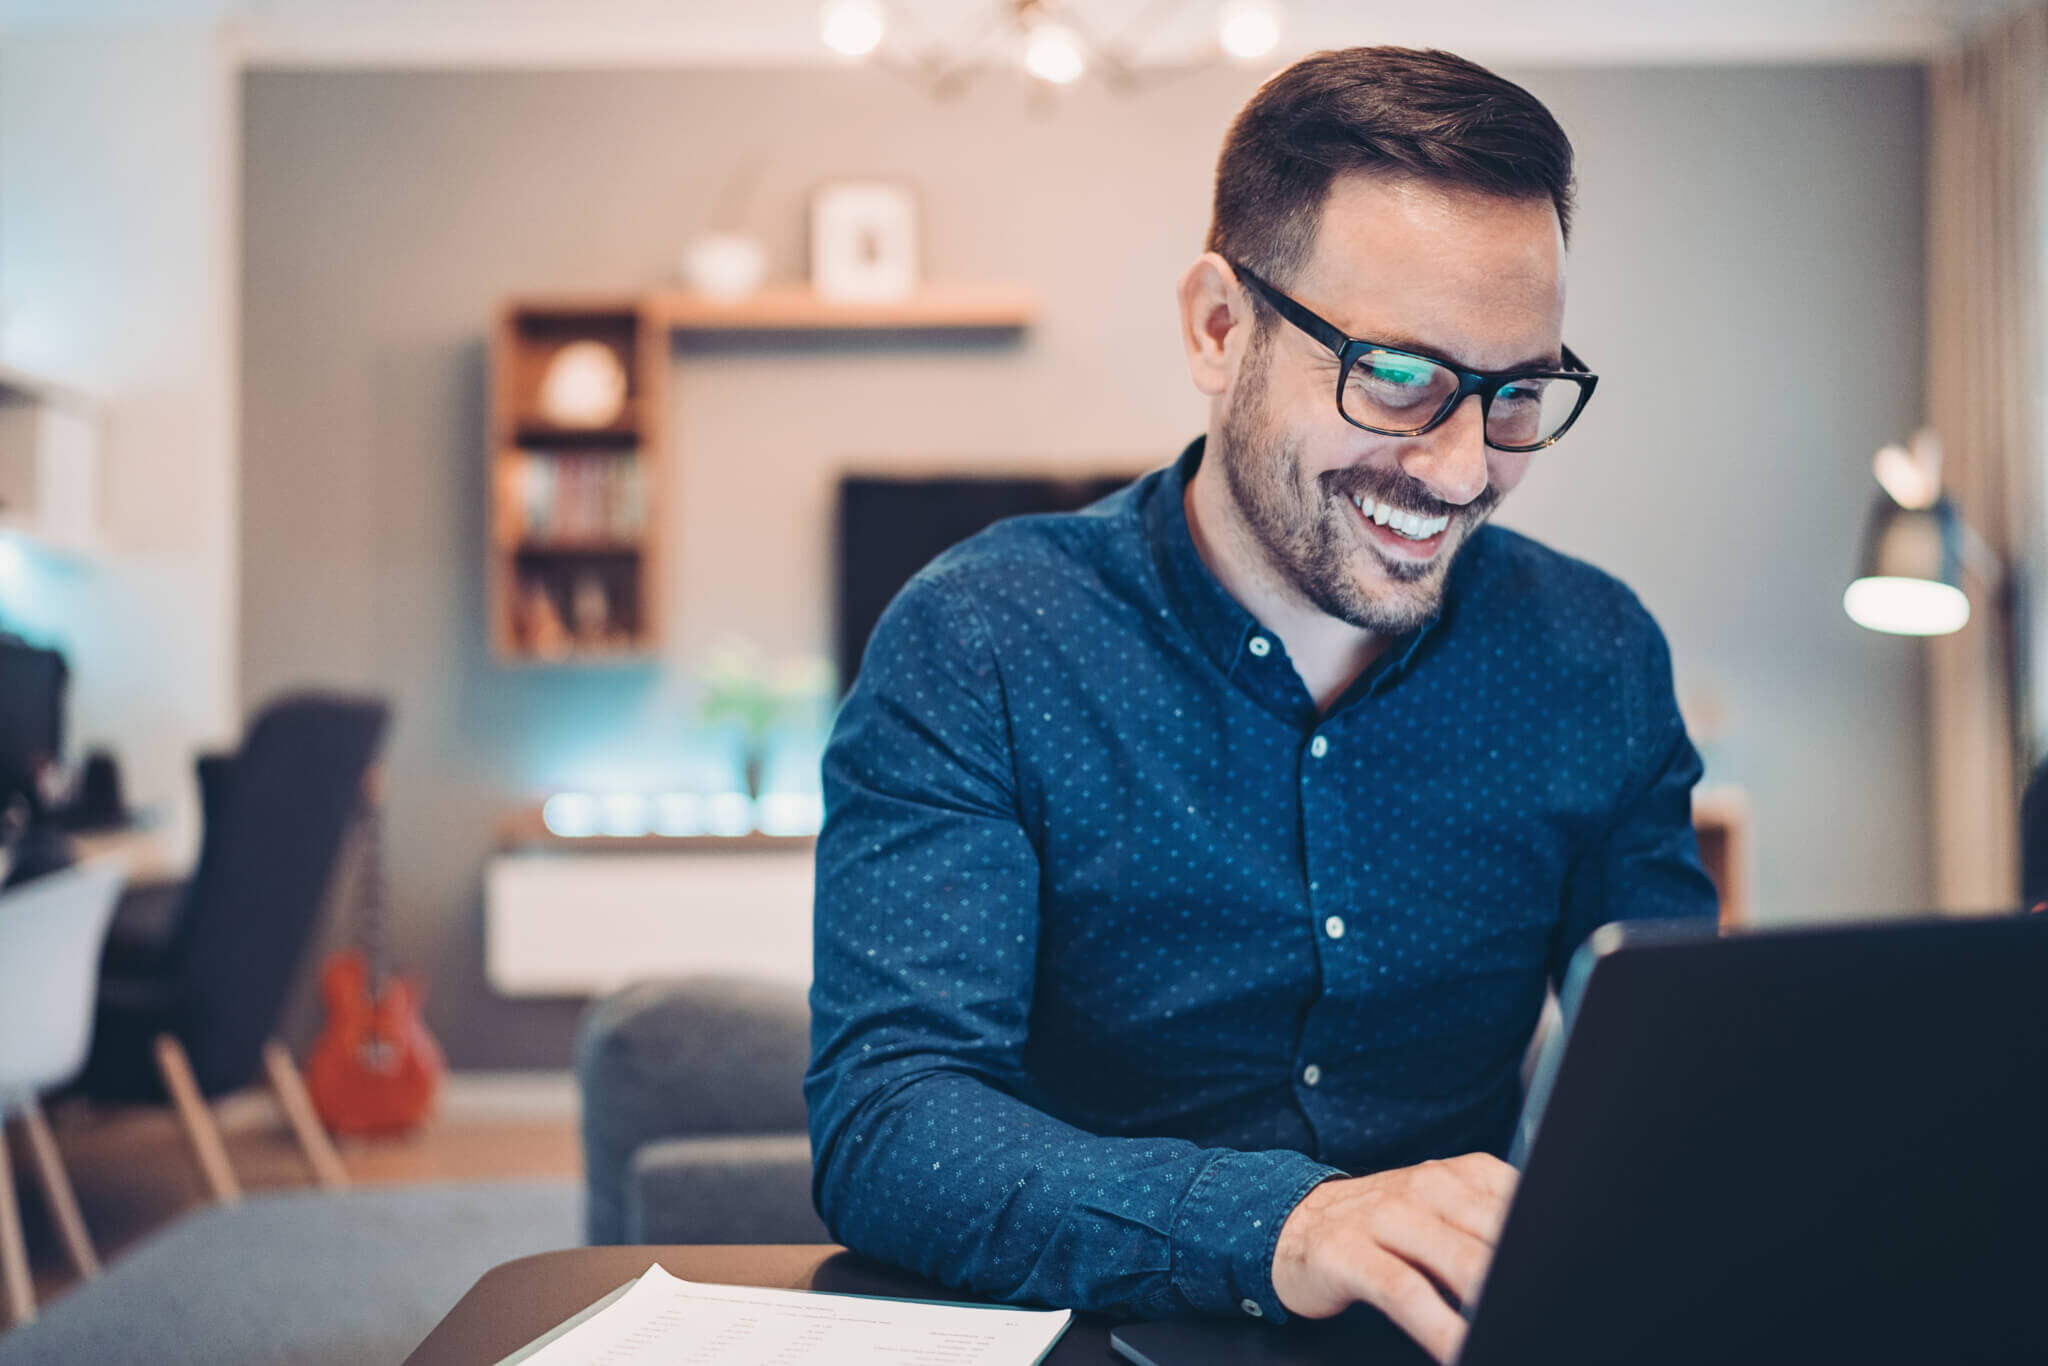 Man wearing glasses and smiling while working on computer